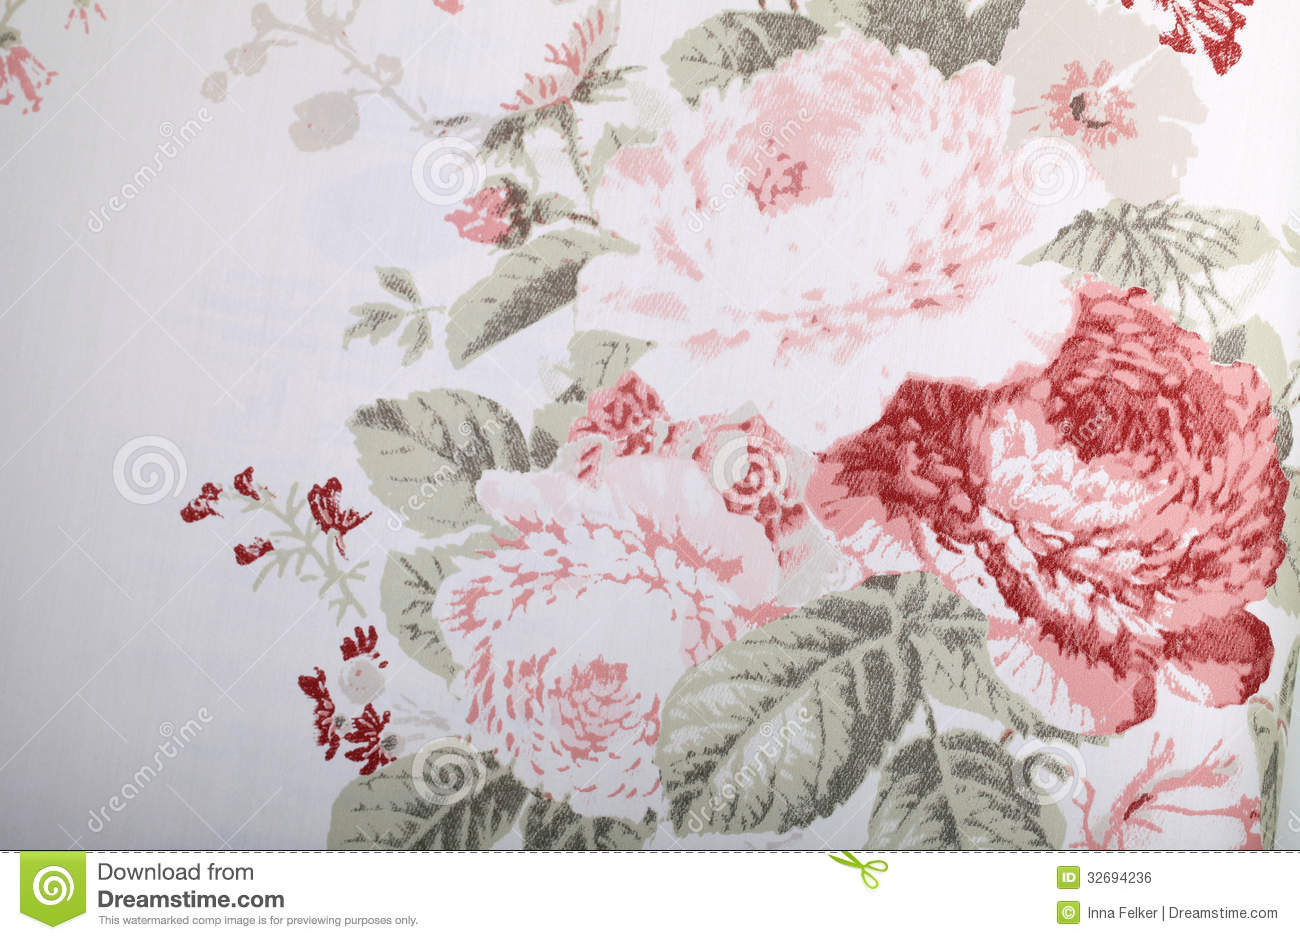 Vintage Wallpaper With Floral Pattern Stock Photo Image Of Image